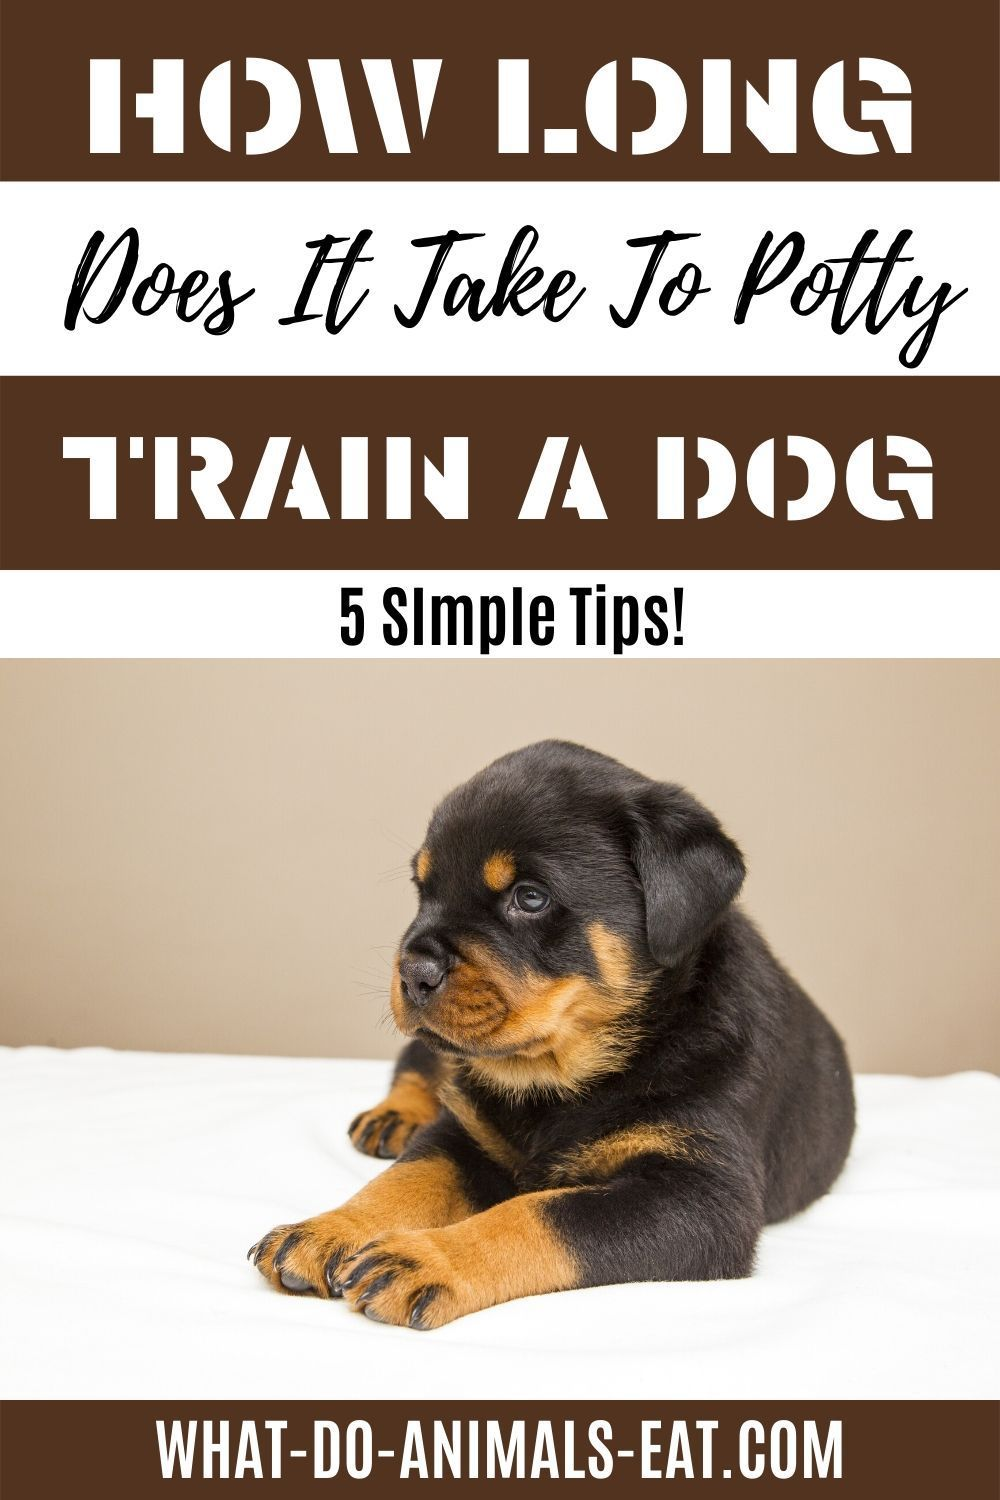 How Long Does It Take To Potty Train A Dog In 2020 Dog Potty Training Dogs Best Dog Training